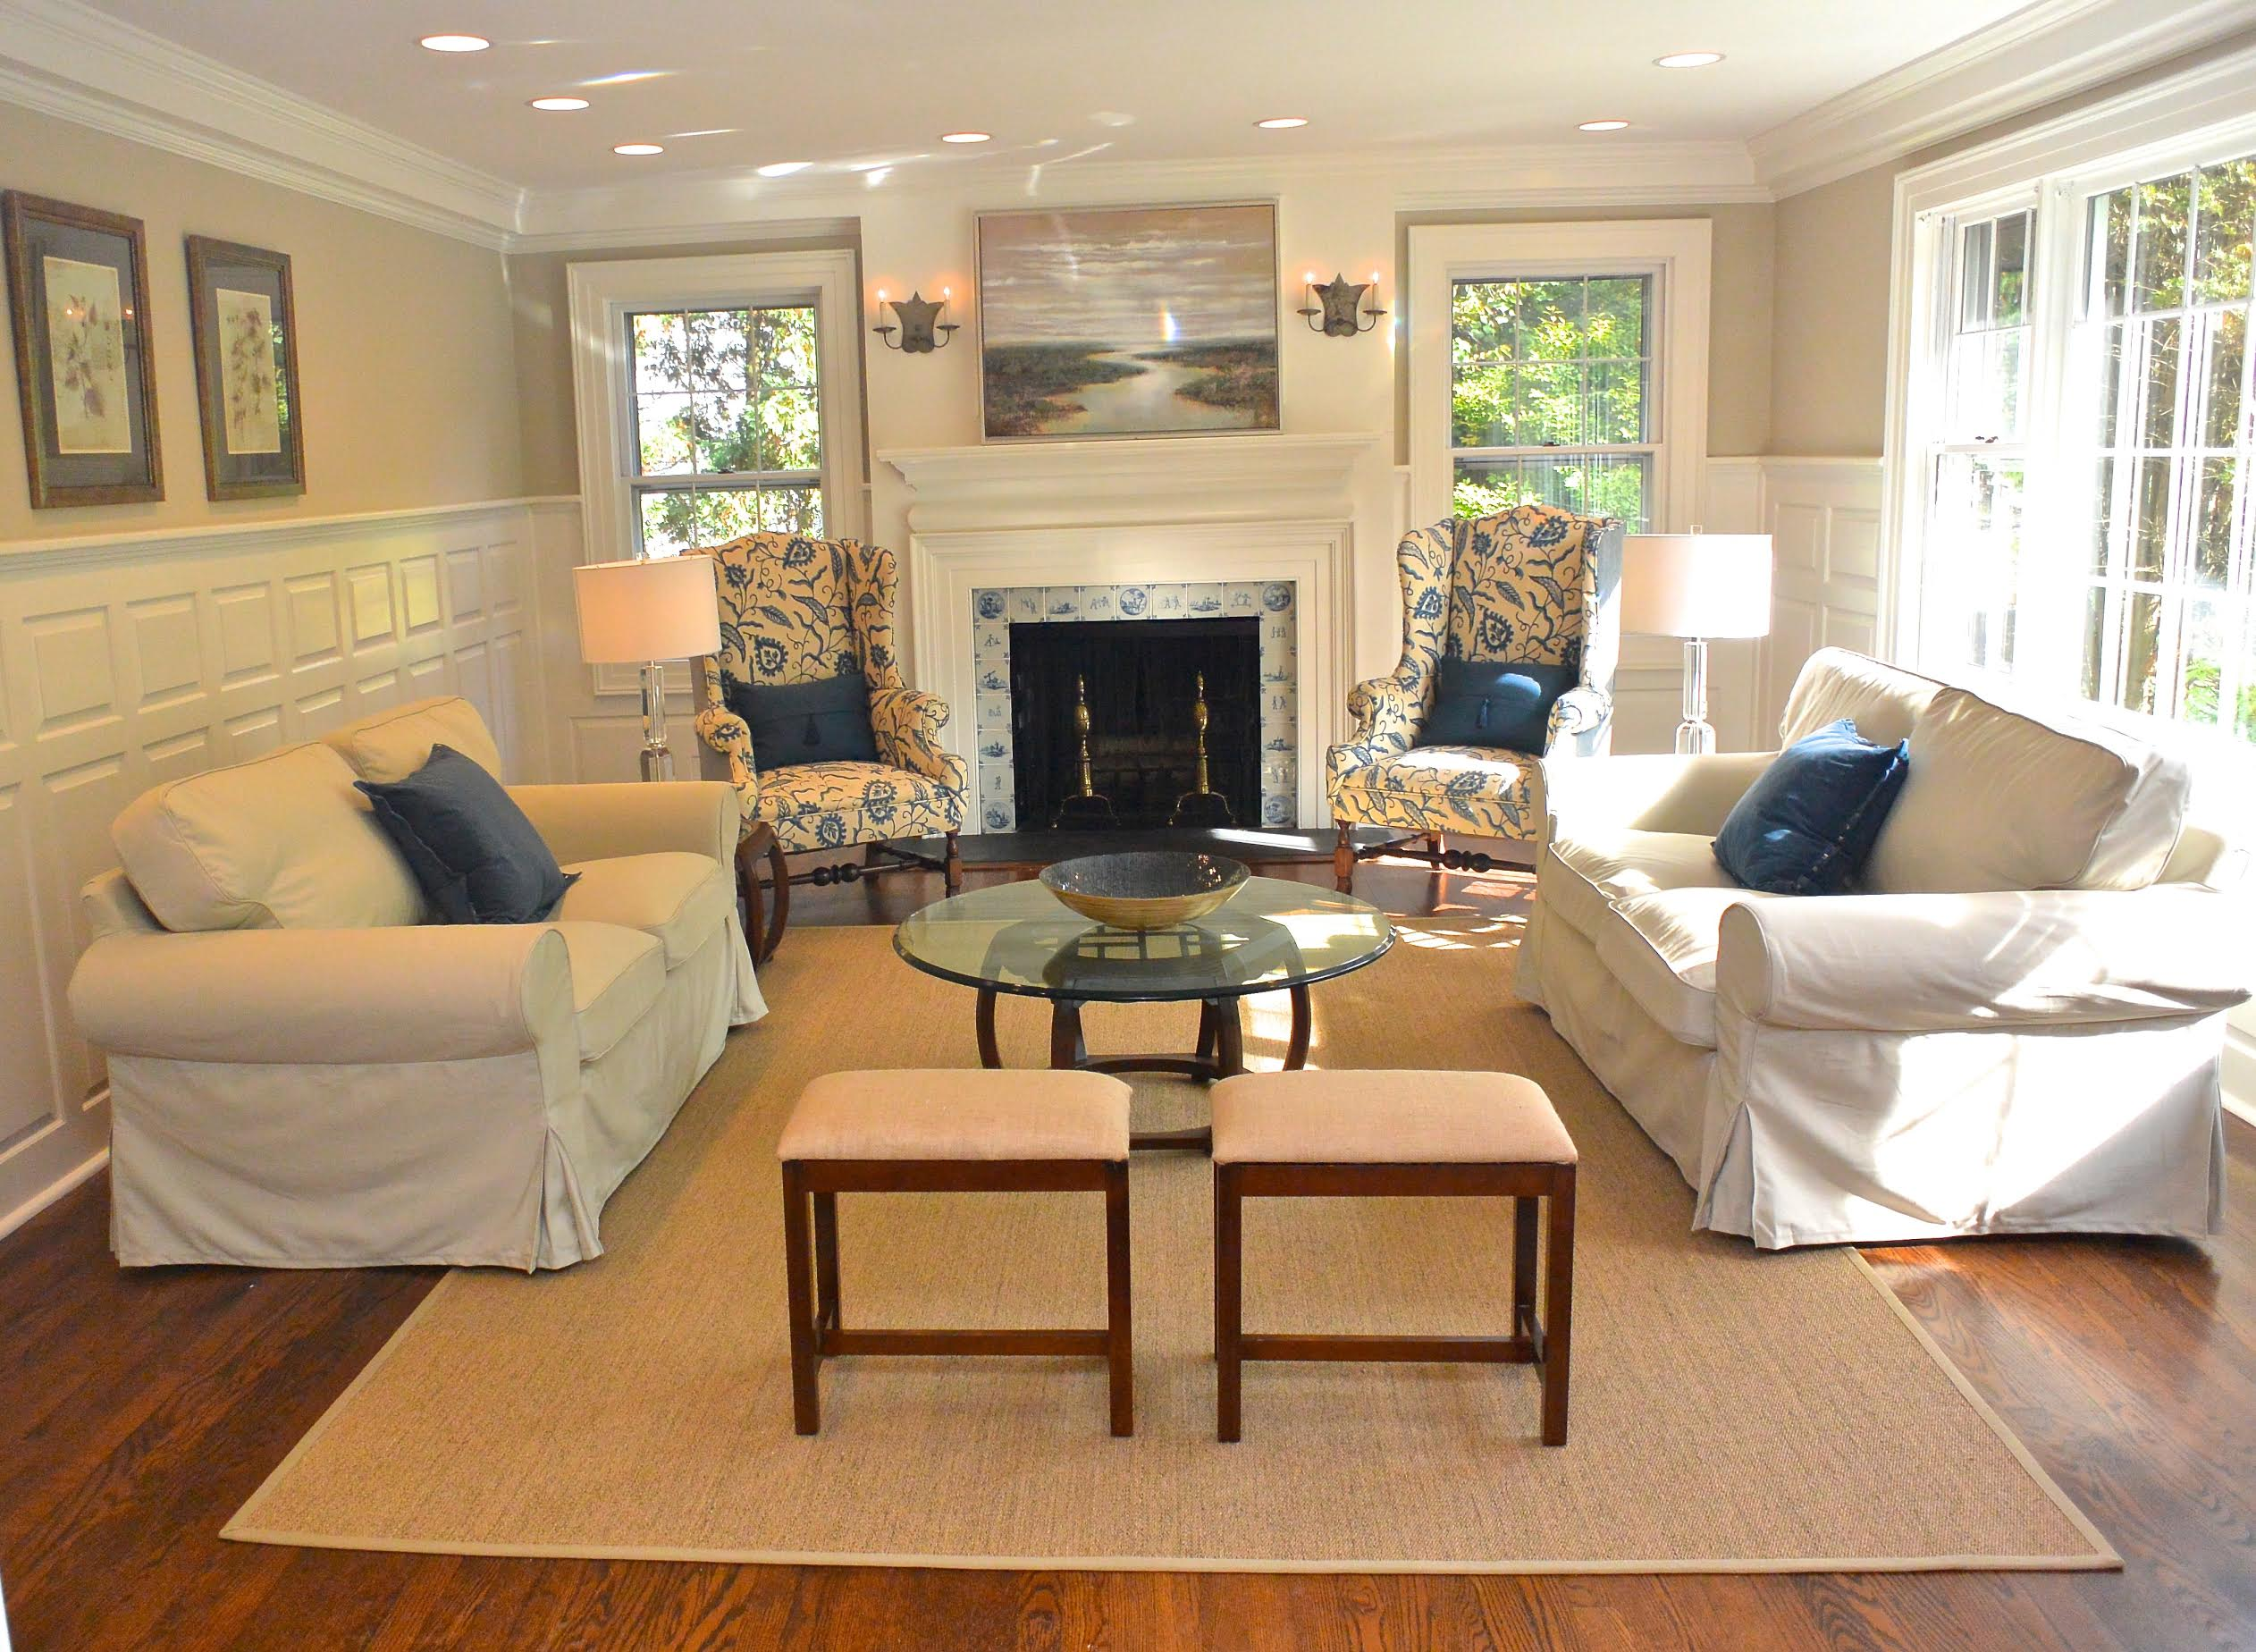 Home staging sets the scene throughout each room in the house to create immediate buyer interest in buying your property - Timeless Decor - Home Staging, 350 Heights Road, Ridgewood, NJ 07450 USA